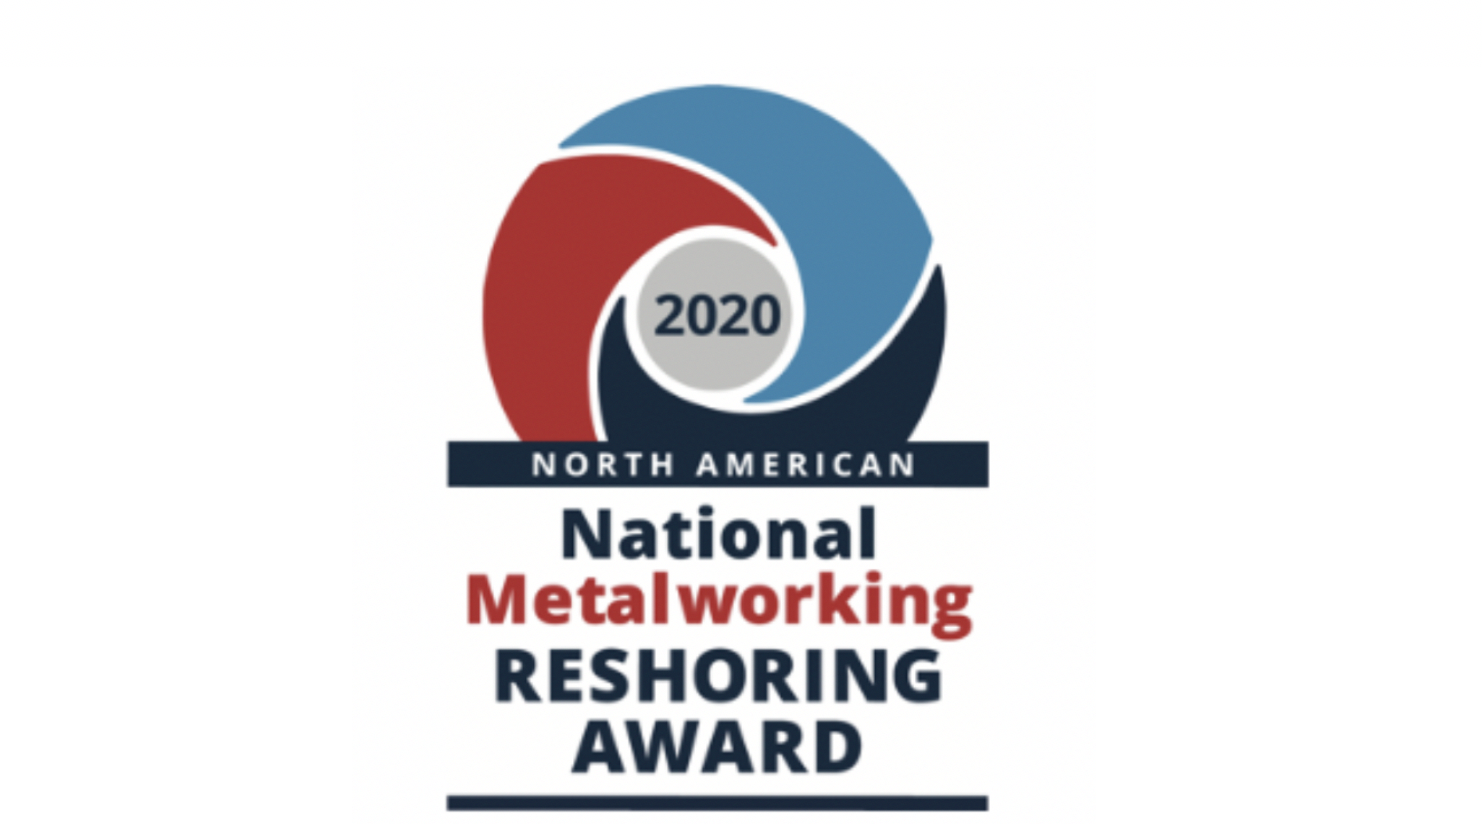 National Metalworking Reshoring Award 2020 – You have to be in it, to win it!